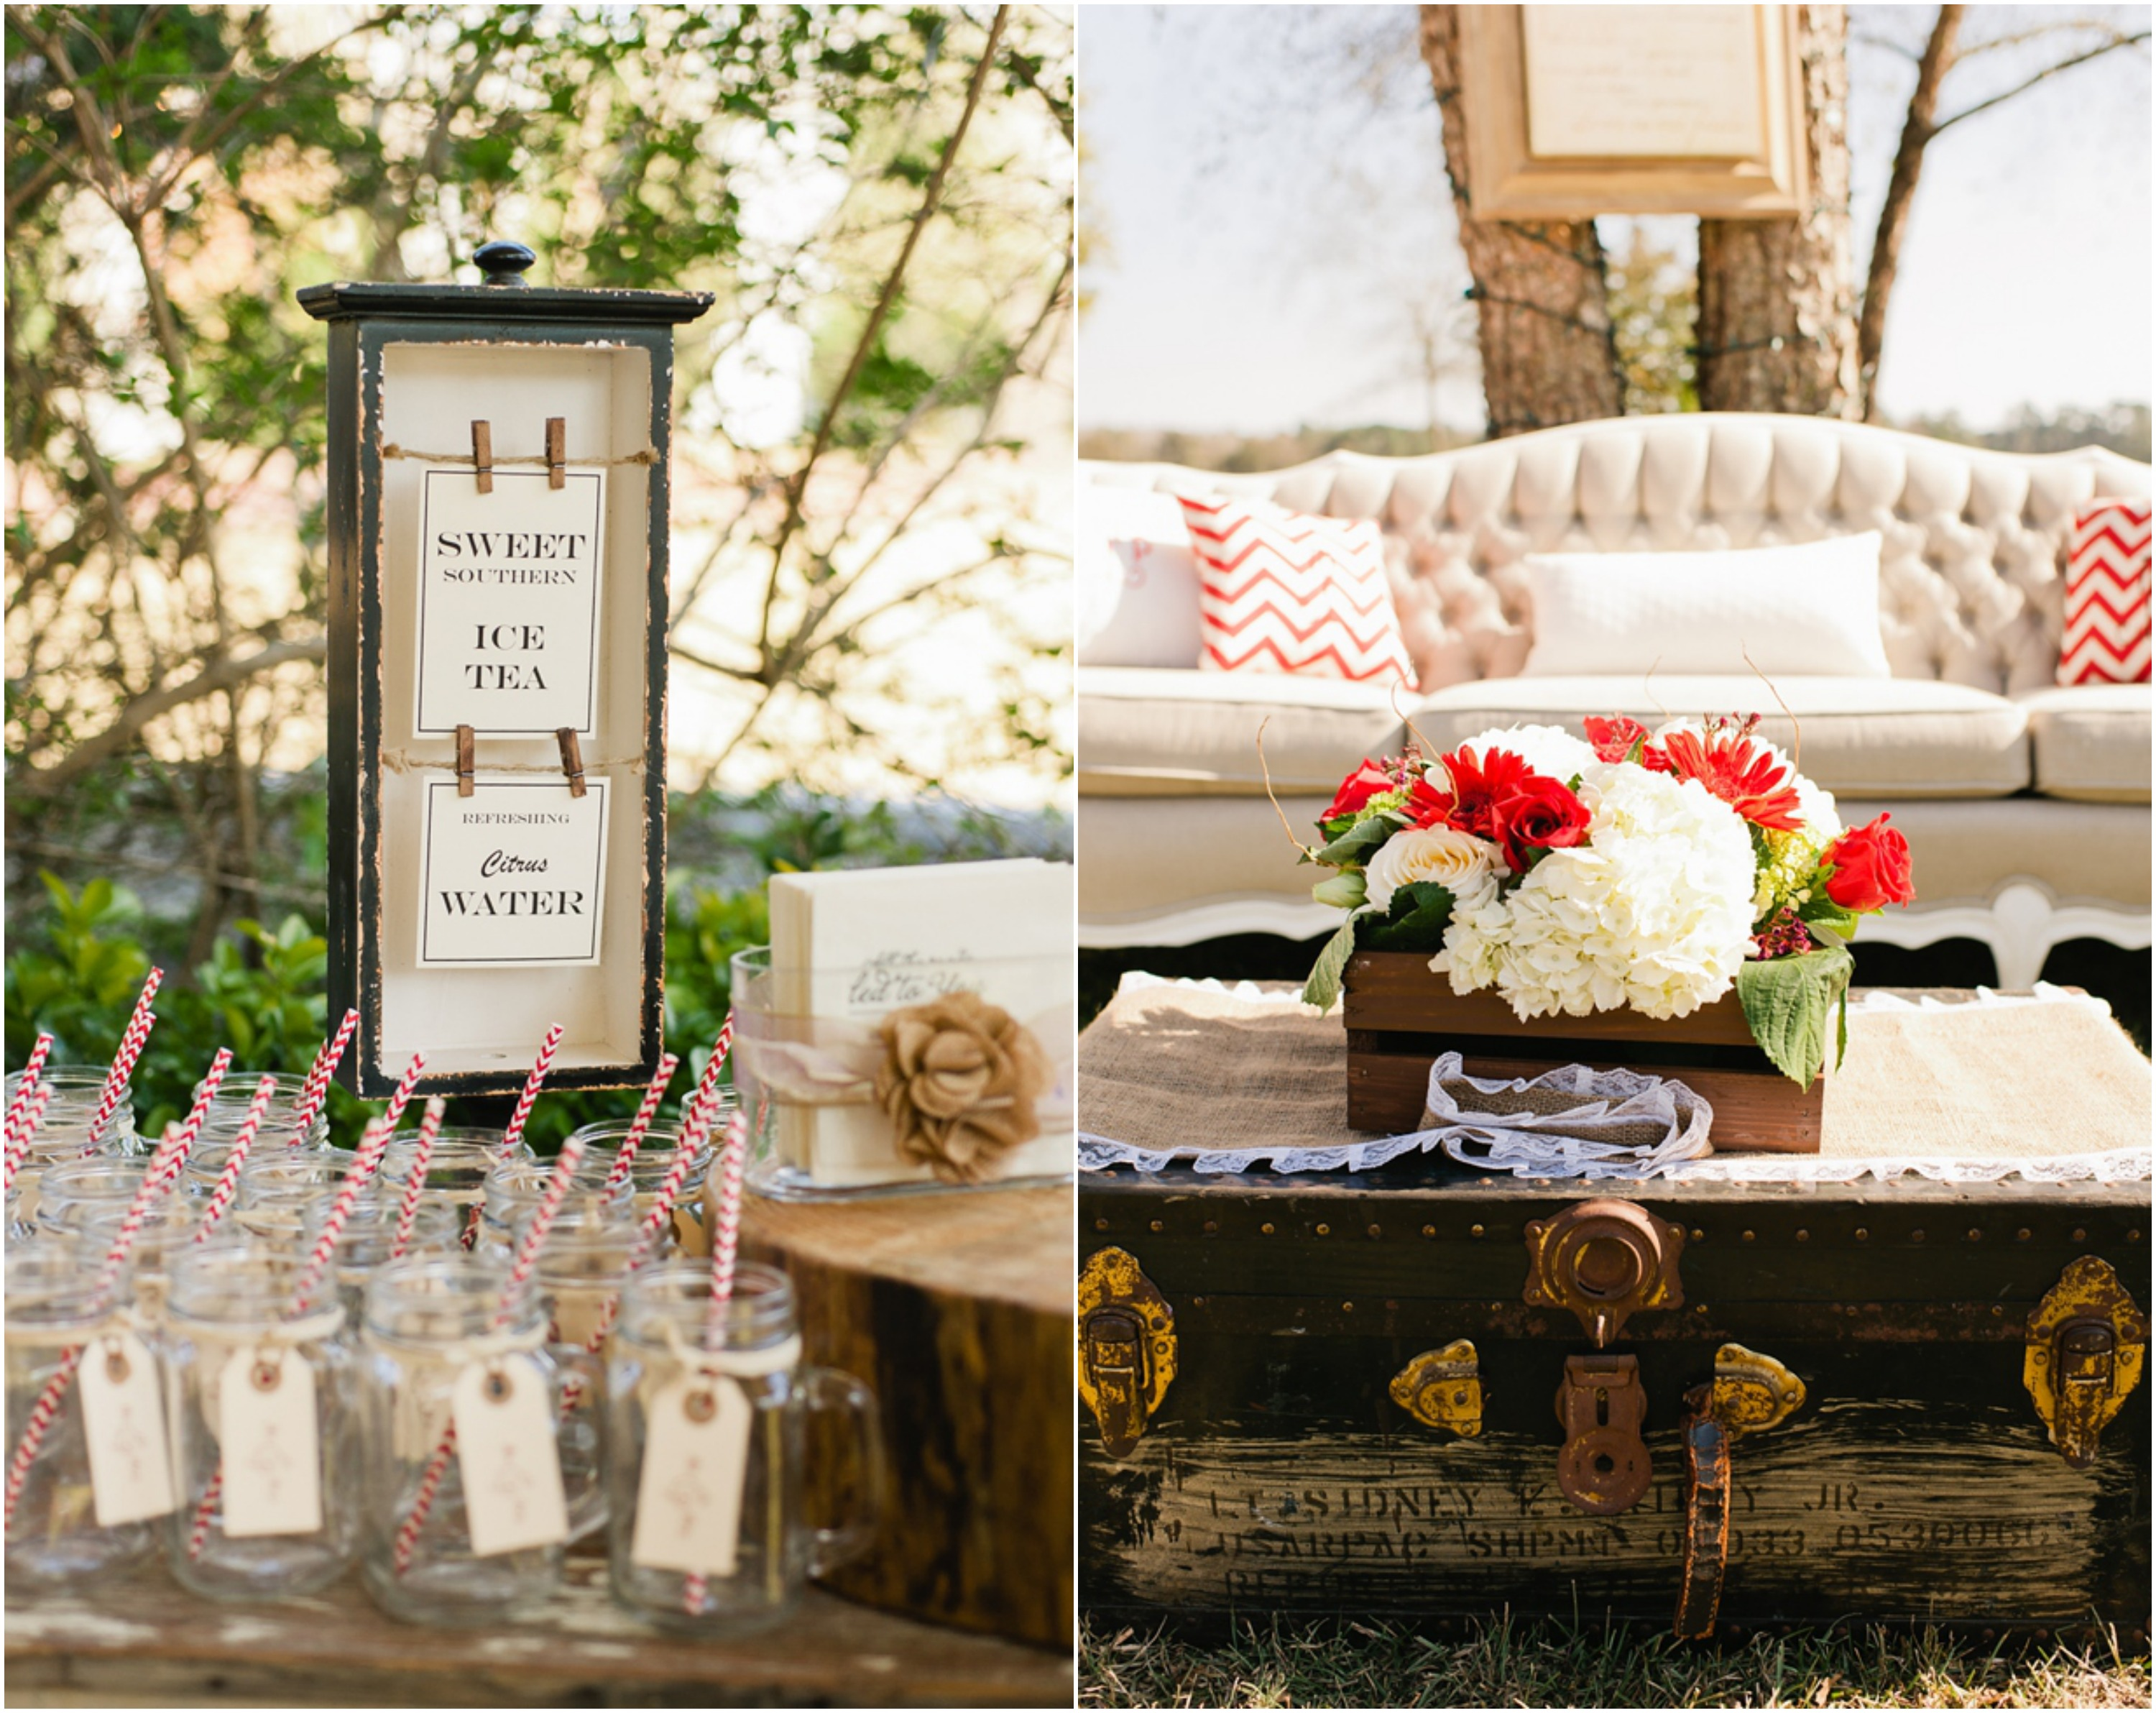 Rustic wedding chic rustic country weddings rustic for Country wedding reception decorations